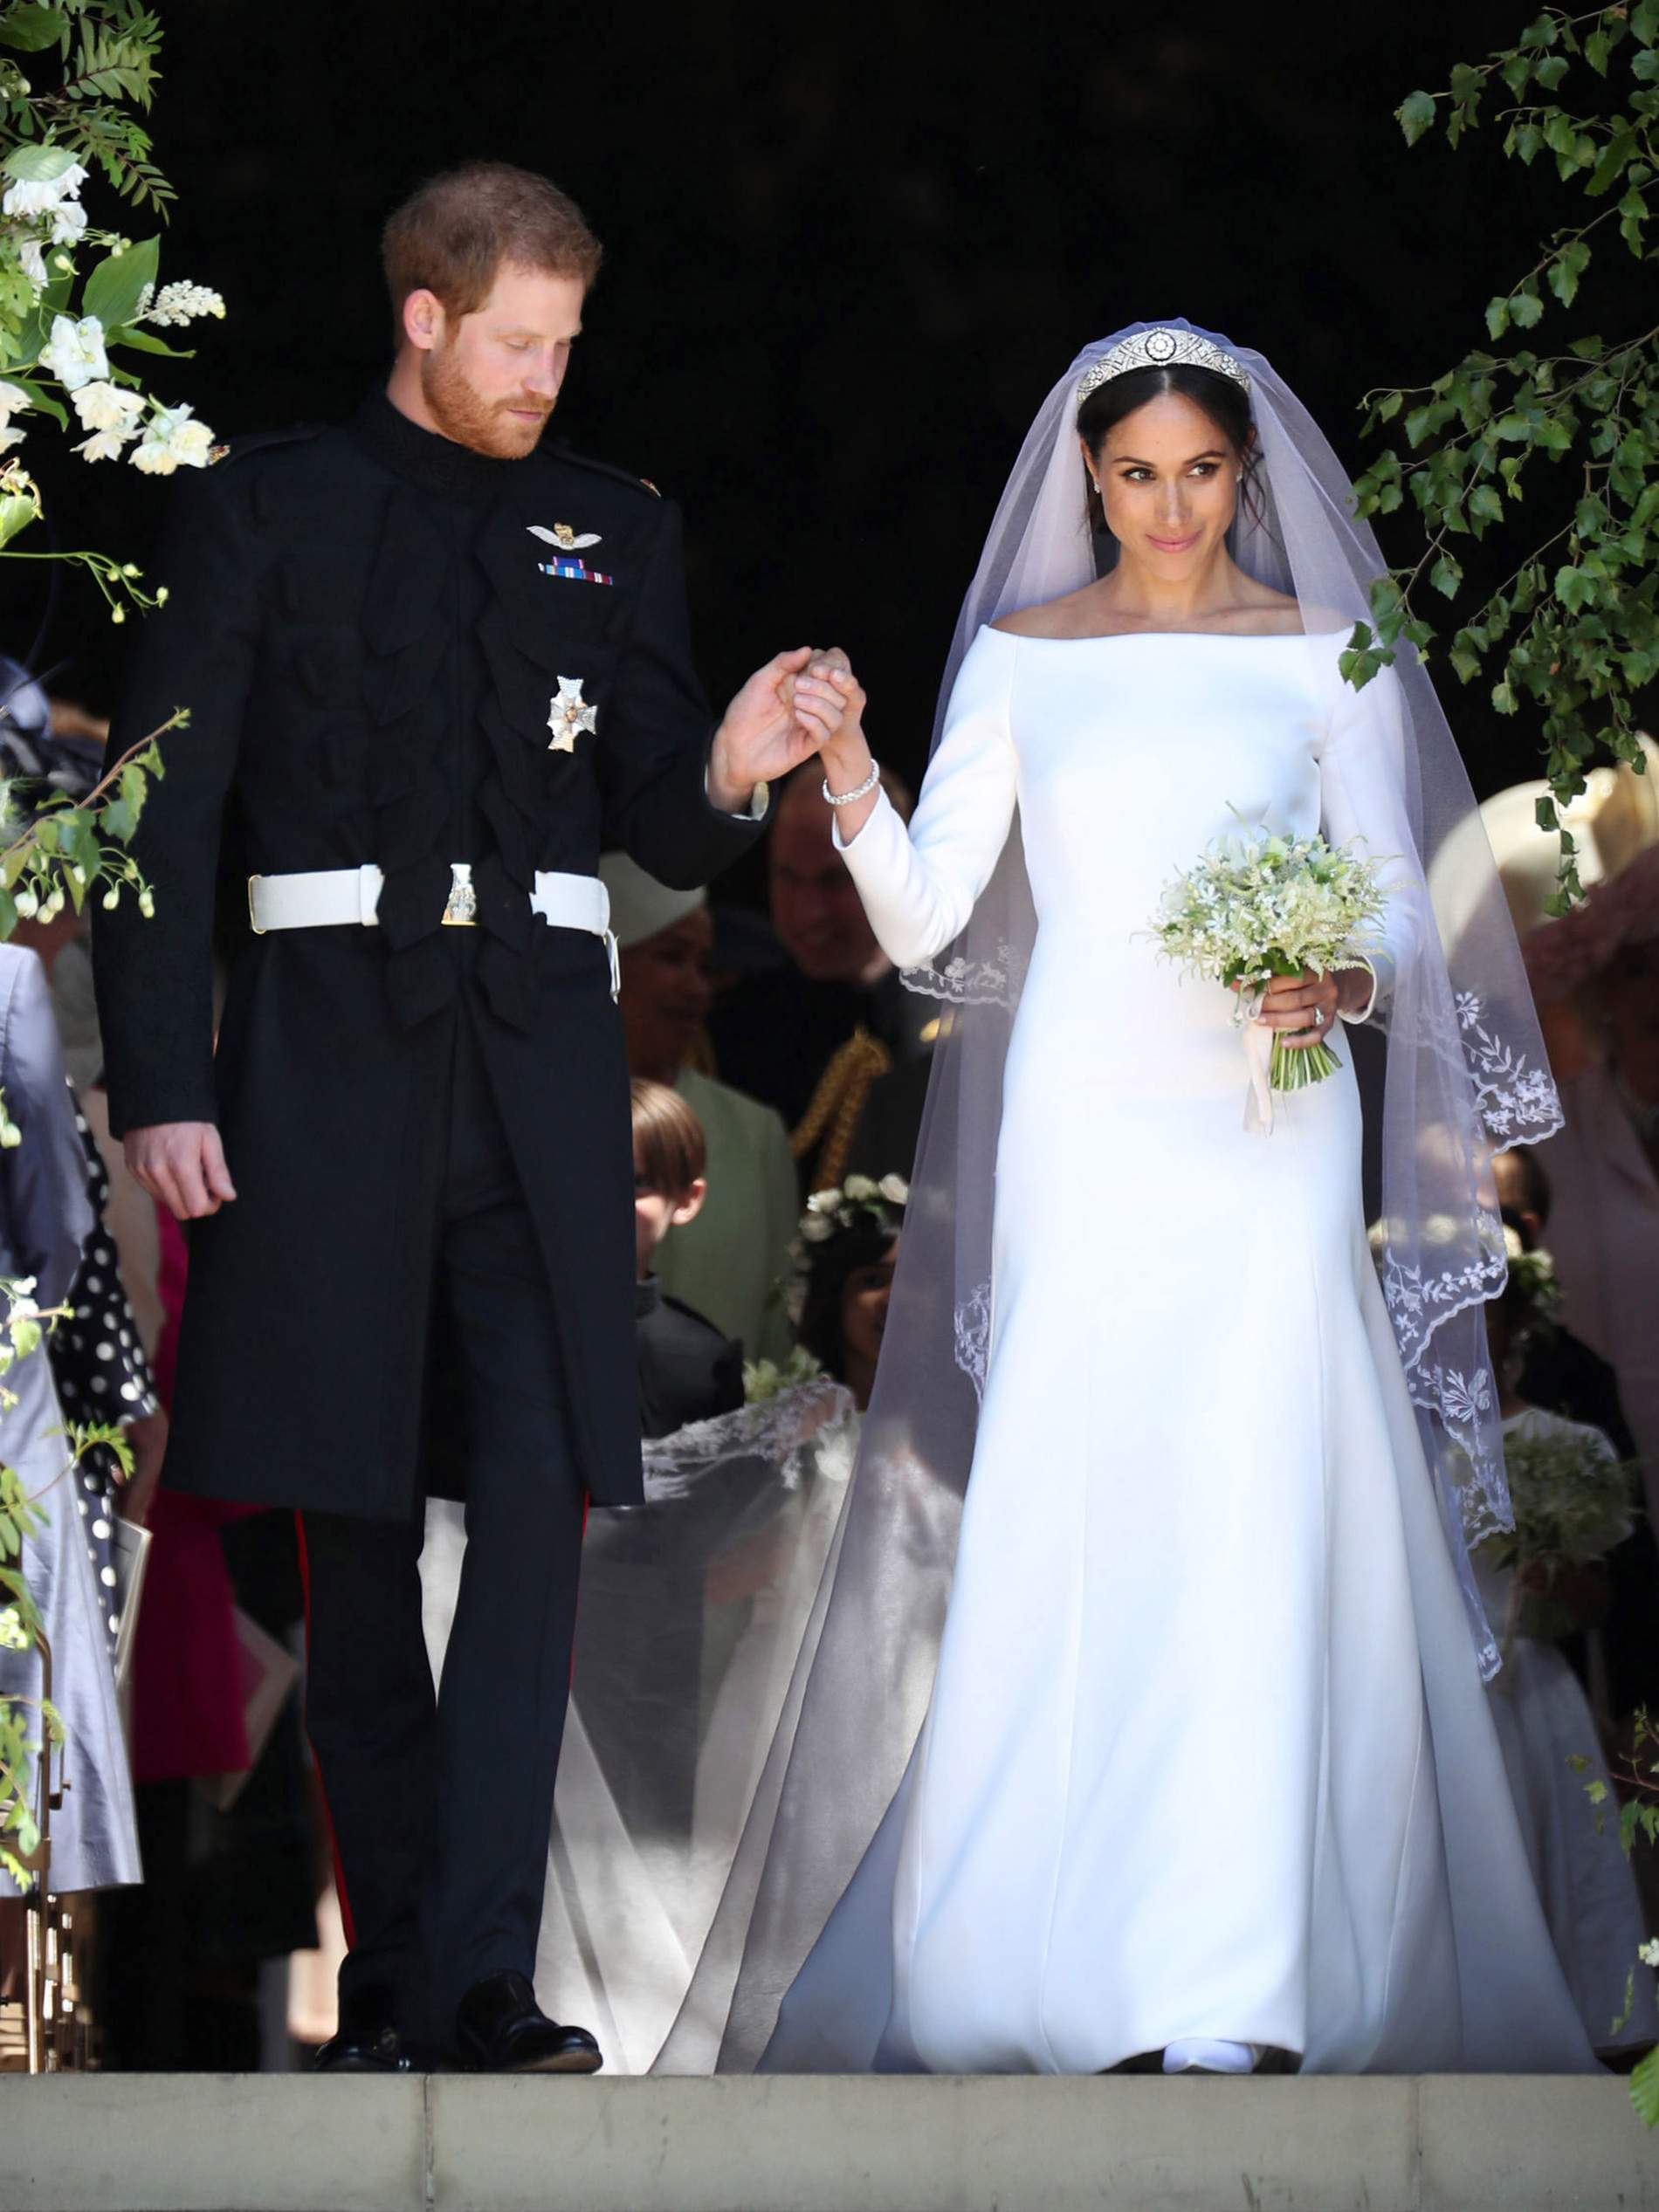 Best Celebrity Wedding Dresses: From Meghan Markle To Jackie Kennedy ...